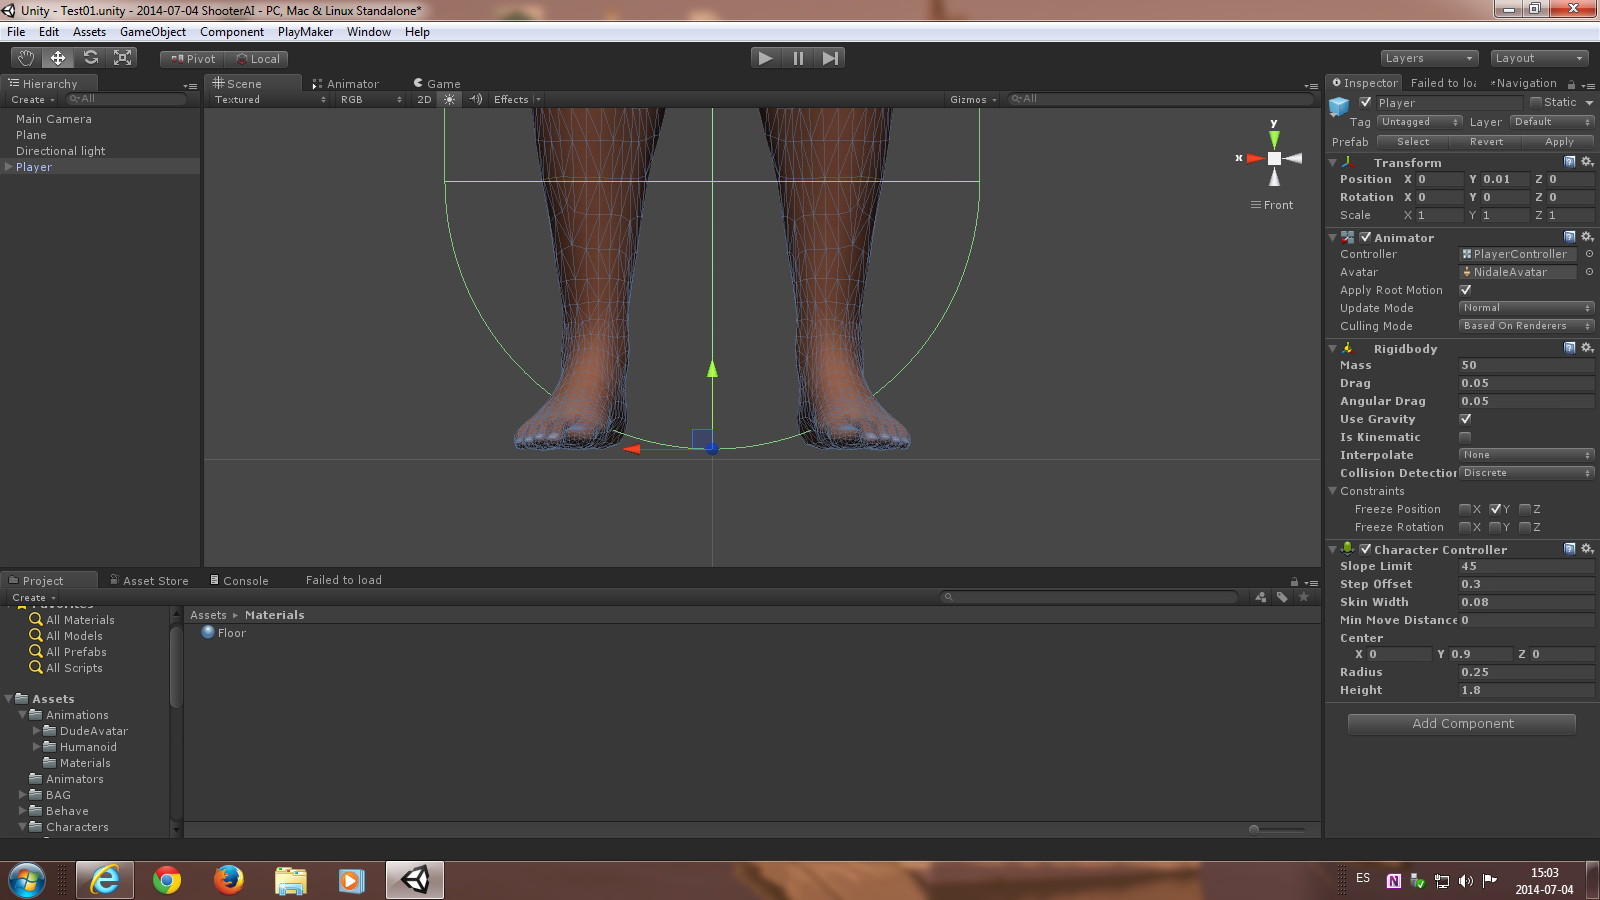 Why character controller floats 5 cm above ground? - Unity Answers